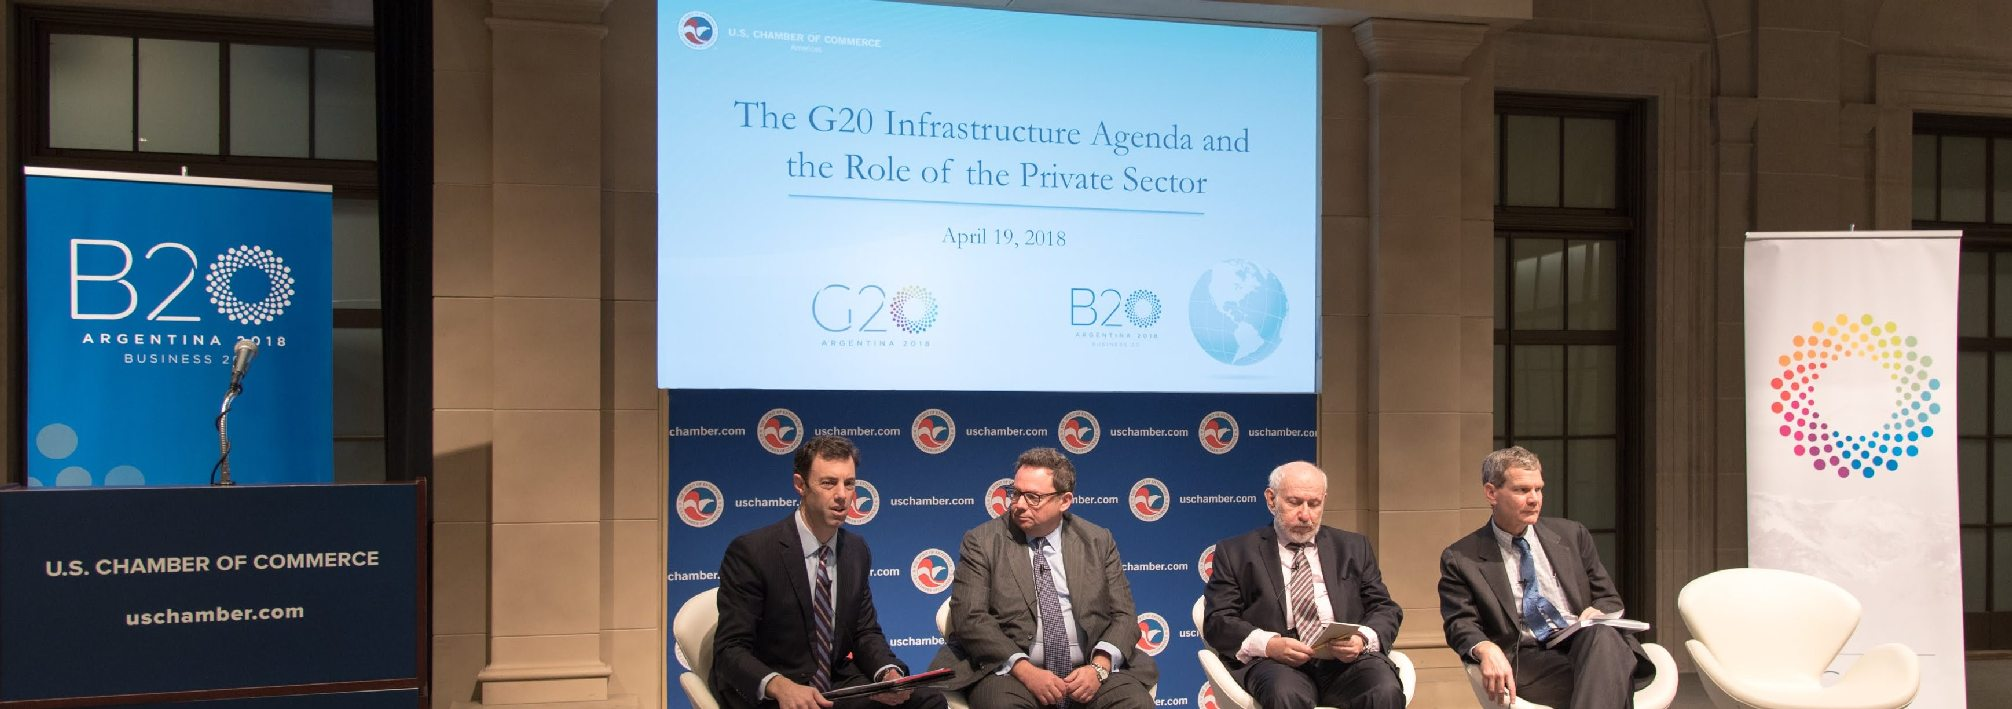 B20 Germany key message and policy recommendations for the G20 leaders